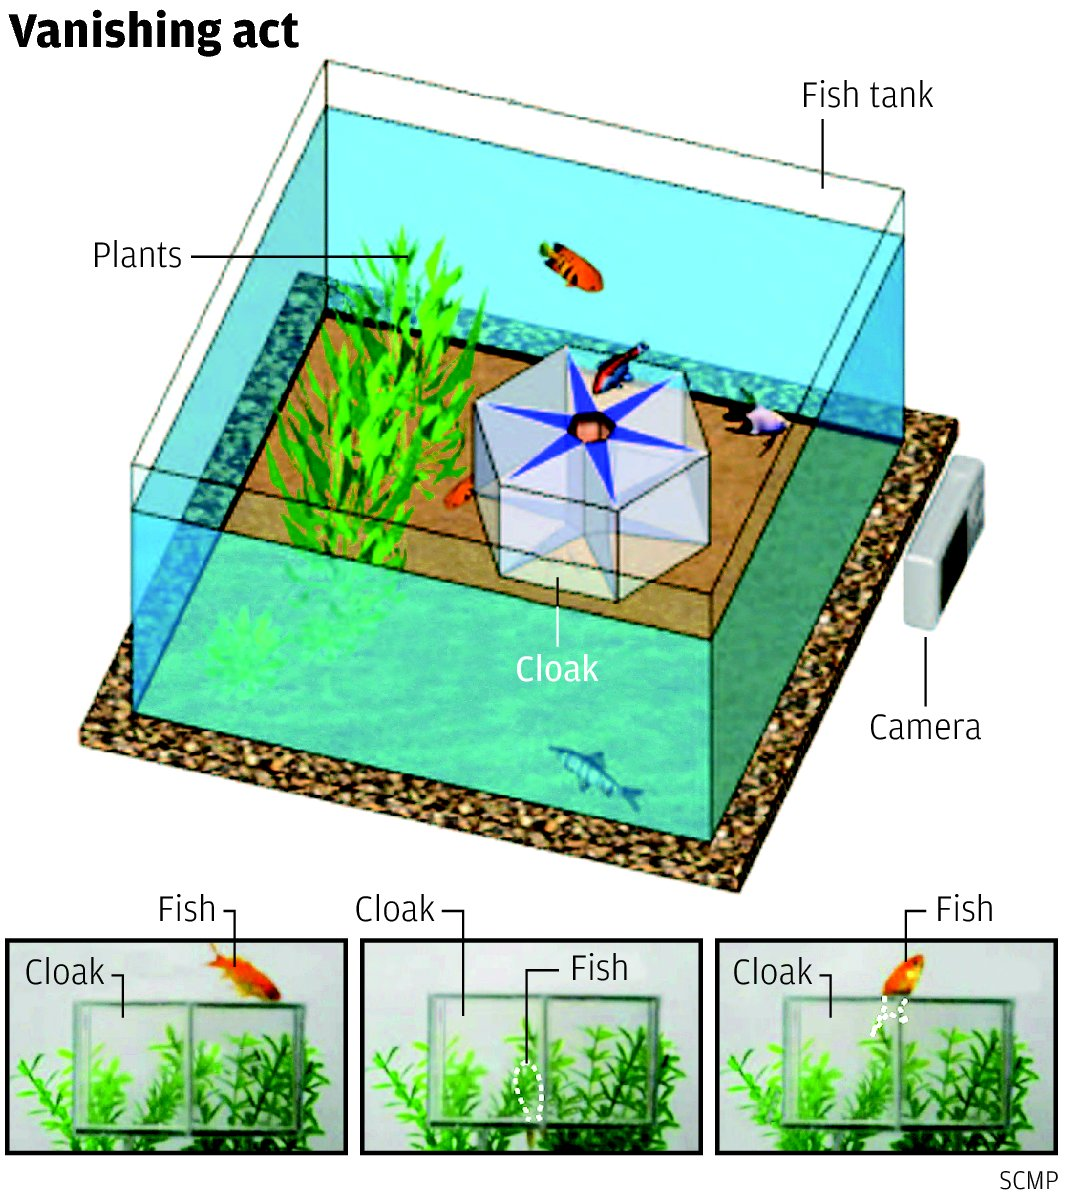 Chinese Invisibility Cloak Adaptive Camouflage Visual Cloaking Technology Fish Tank Professor Chen Hongsheng Zhejiang University South China Morning Post 1 Chinese Military Developing Invisibility Cloak: Multispectral Adaptive Camouflage/Visual Cloaking Technology for Future Chinese Fighter Aircraft and Vehicles and Future Warfare?